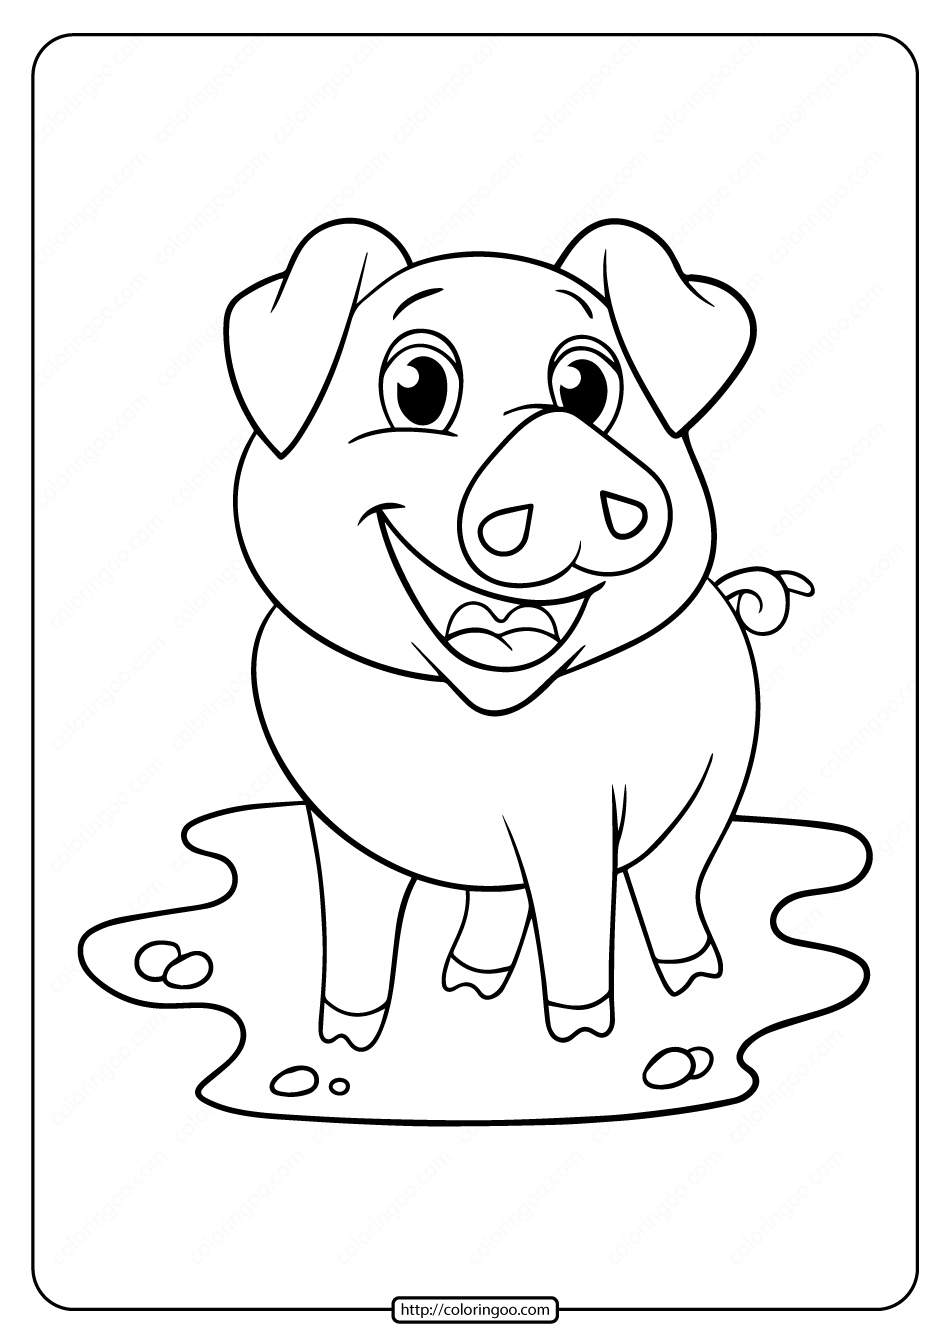 coloring pig for kids simple pig drawing at getdrawings free download pig kids for coloring